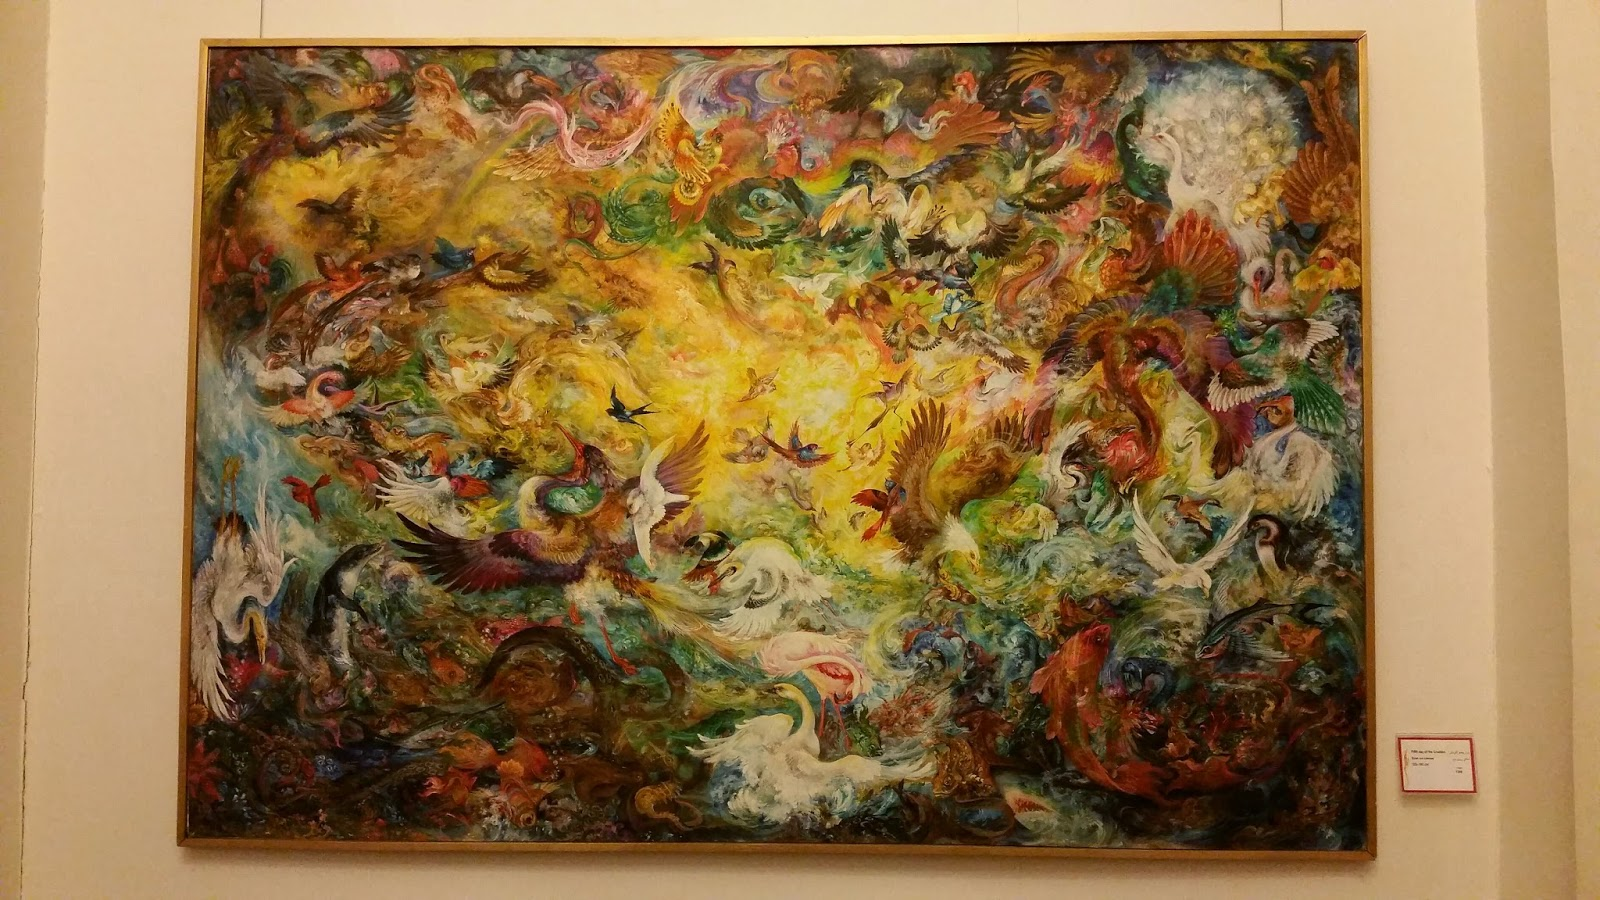 creating outcrayons jackiepneal the art of mahmoud farshchian my lovely daughter in law neda is just back home from a to her family in tehran while she was there she ed a local art museum her mom and